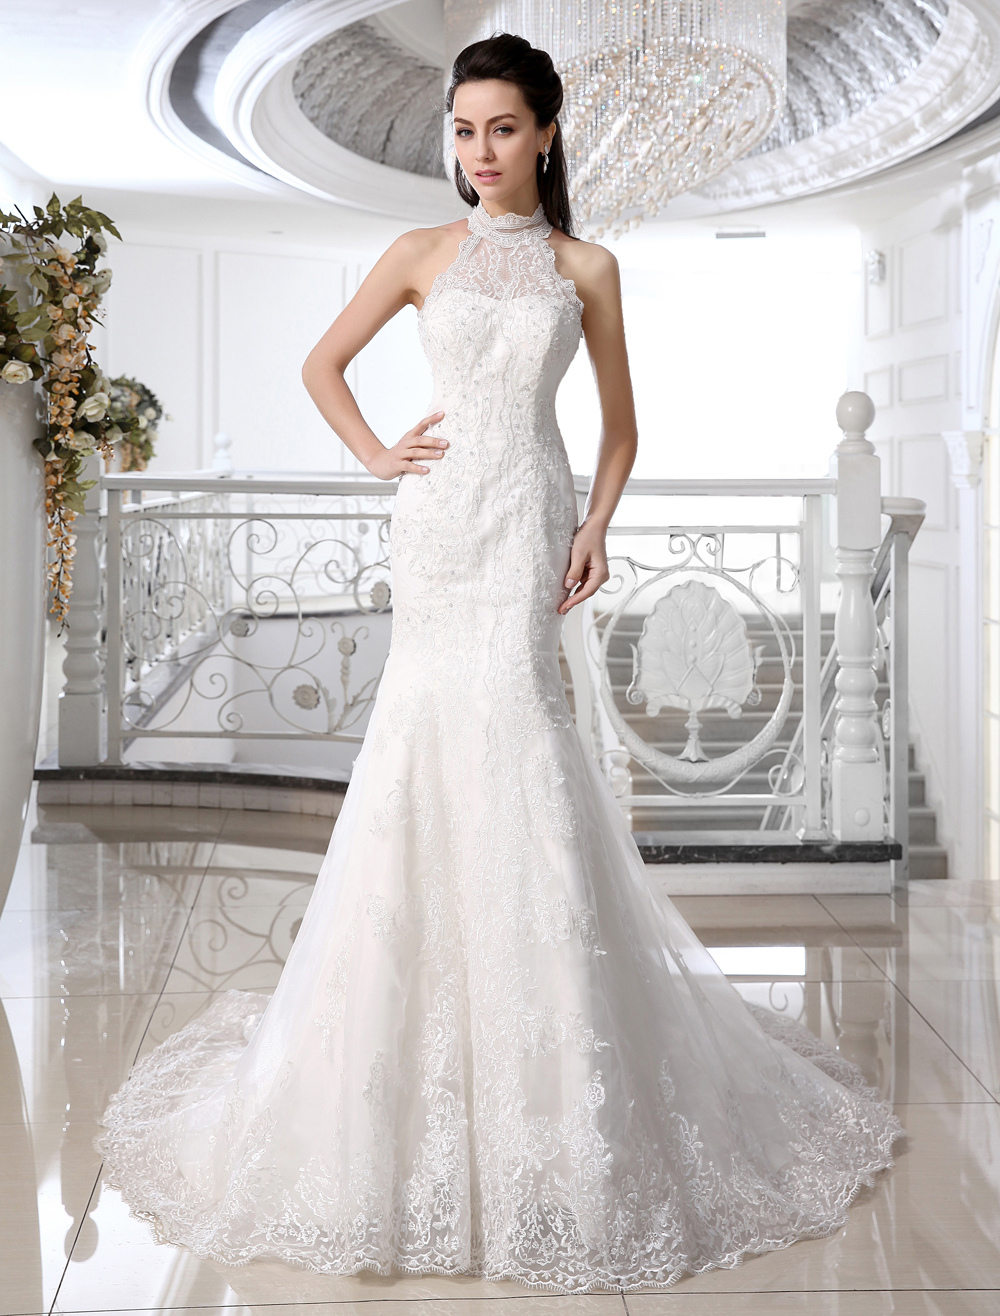 Mermaid Wedding Dresses Ivory Halter Bridal Gown Lace Applique Beaded Bridal Dress With Train photo